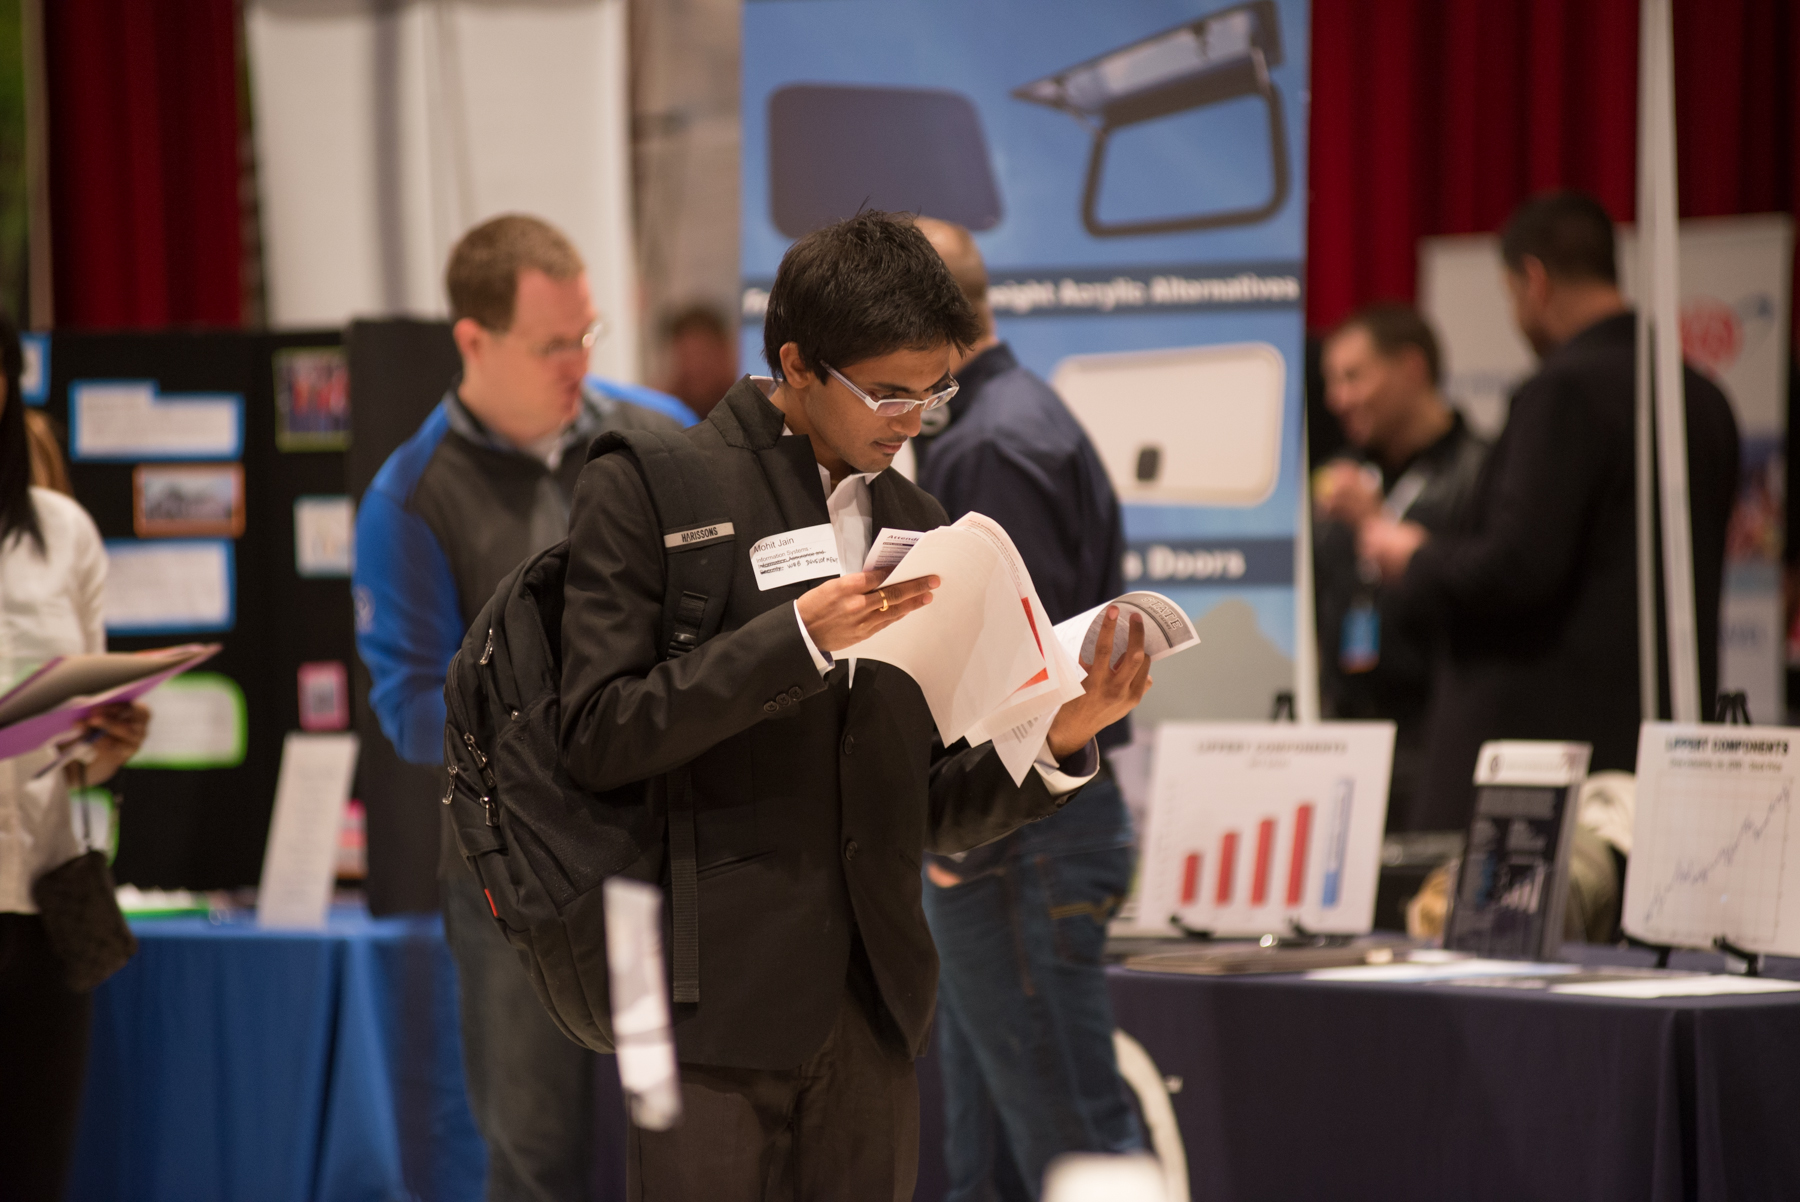 A male student looking through several flyers and pieces of paper at a Career Fair.